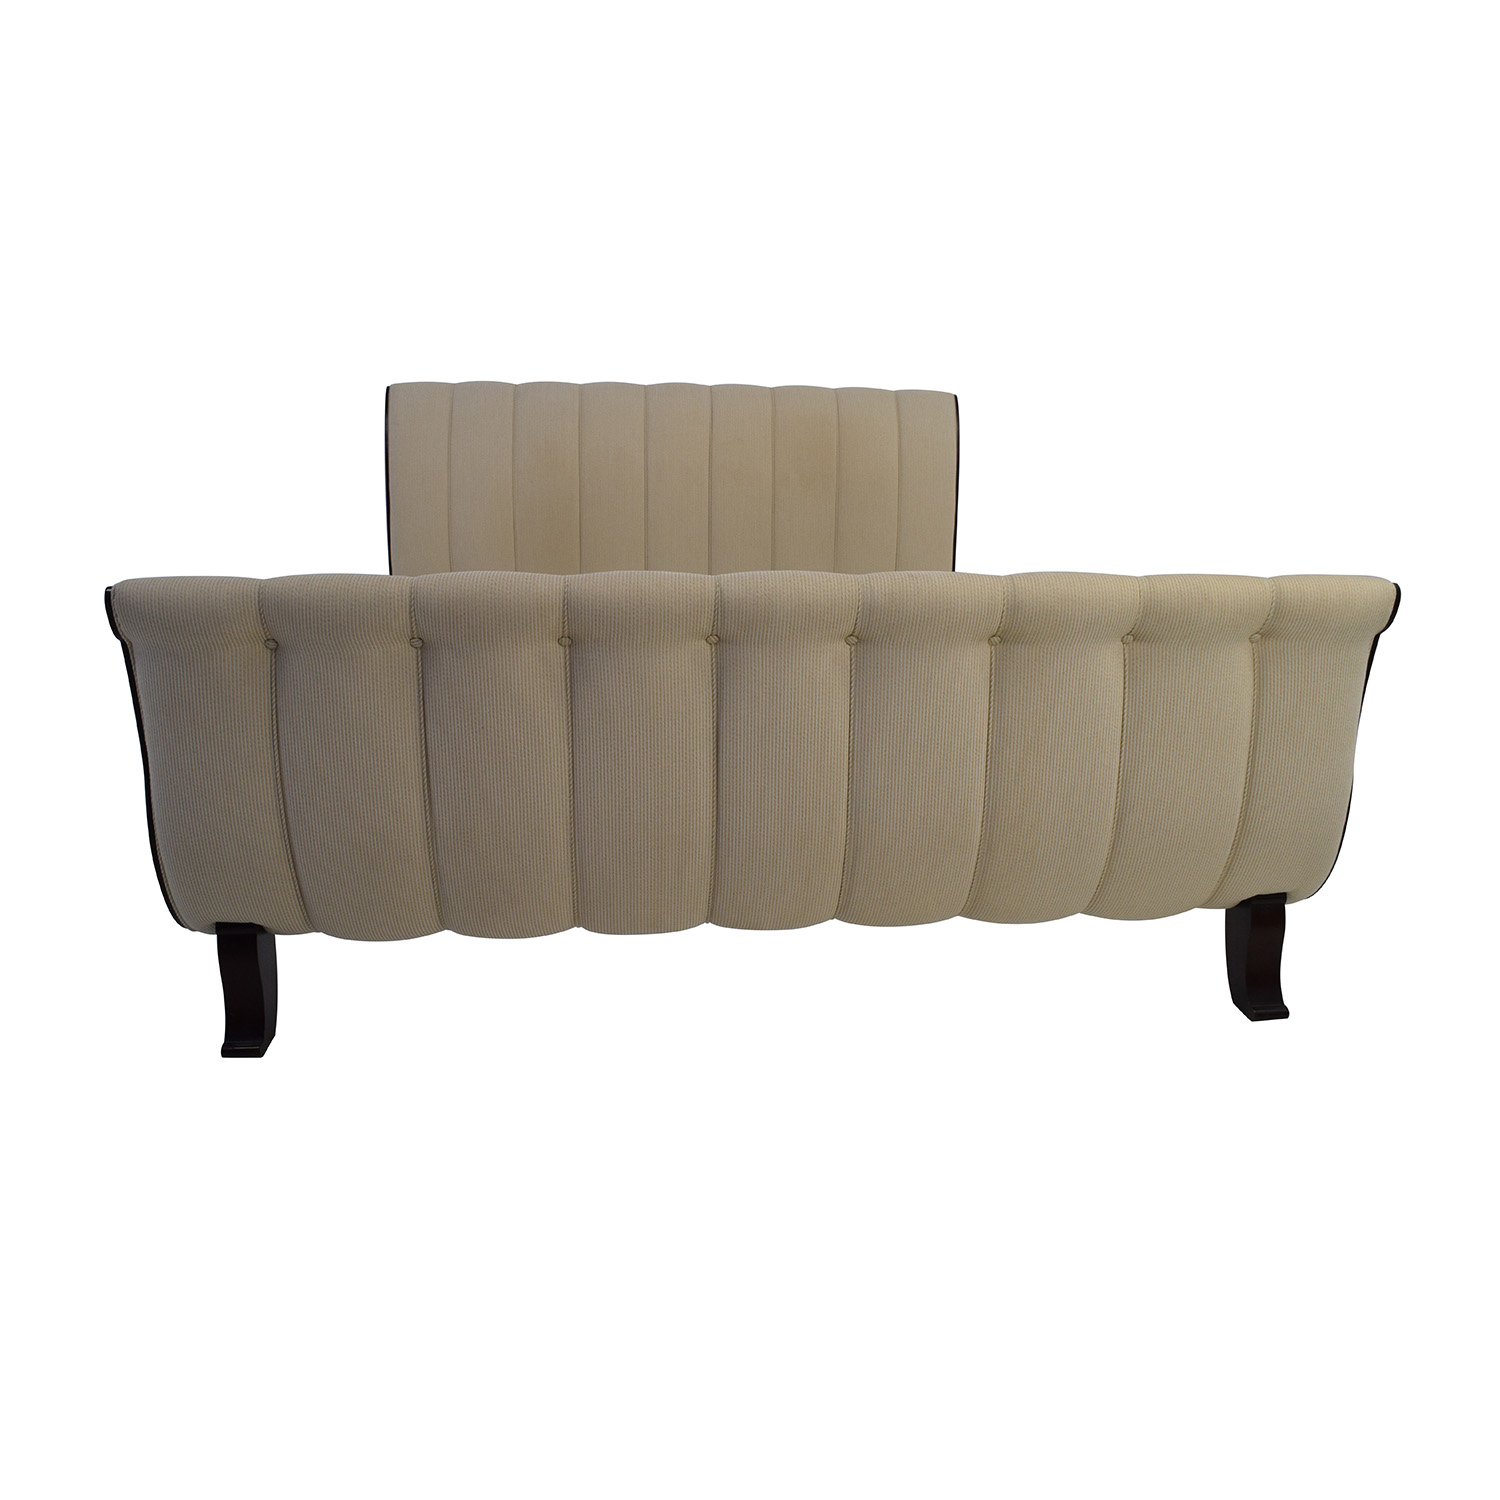 Lillian August Lillian August Upholstered King Sleigh Bed Frame White